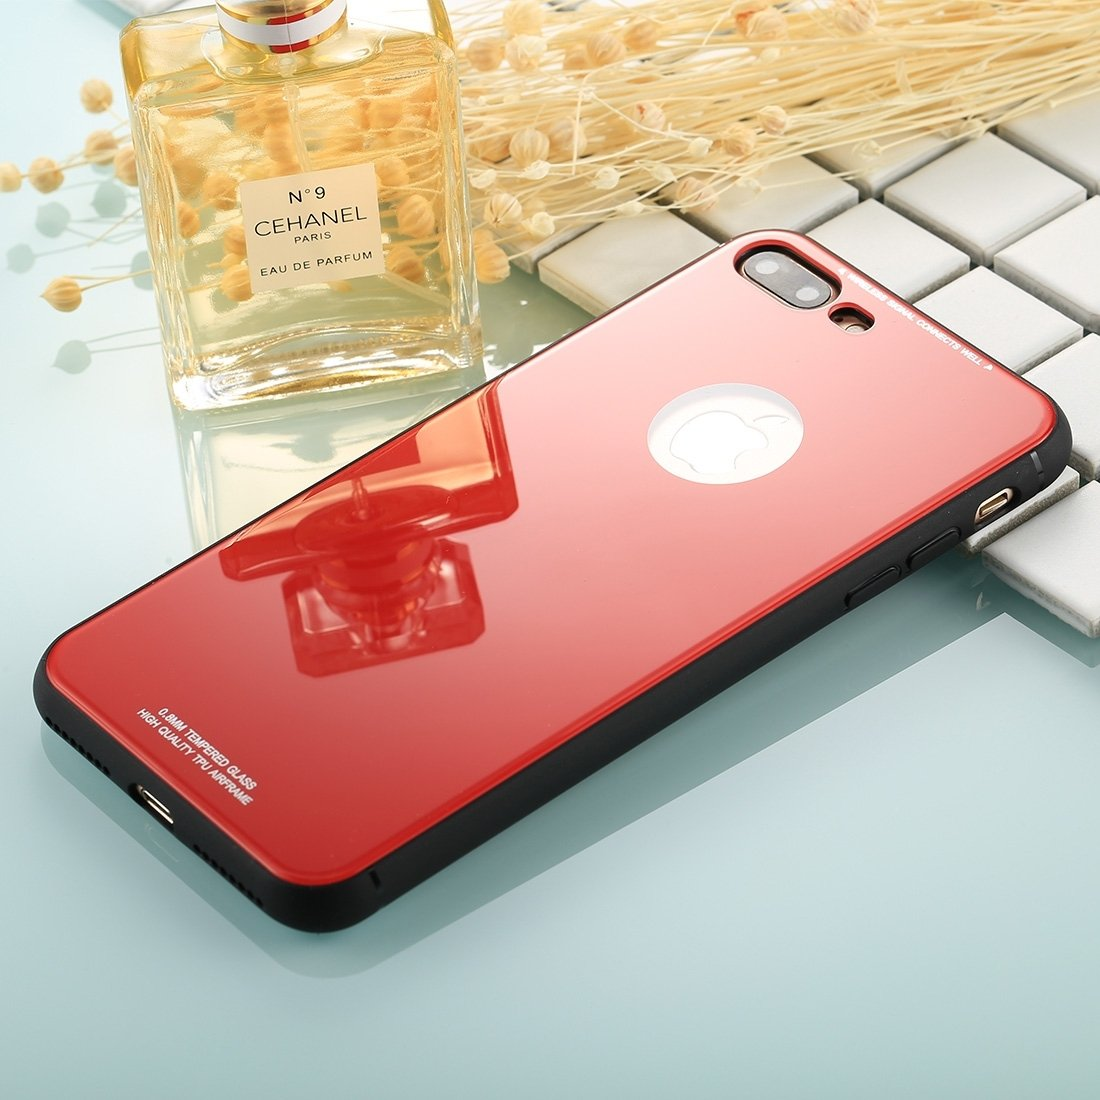 TONGZHENGTAI Designed for iPhone 8 Plus / 7 Plus Case, 0.8mm Tempered Glass TPU Airframe Shockproof Protector Cover Simple Style Back Shell (Color : Red) by TONGZHENGTAI